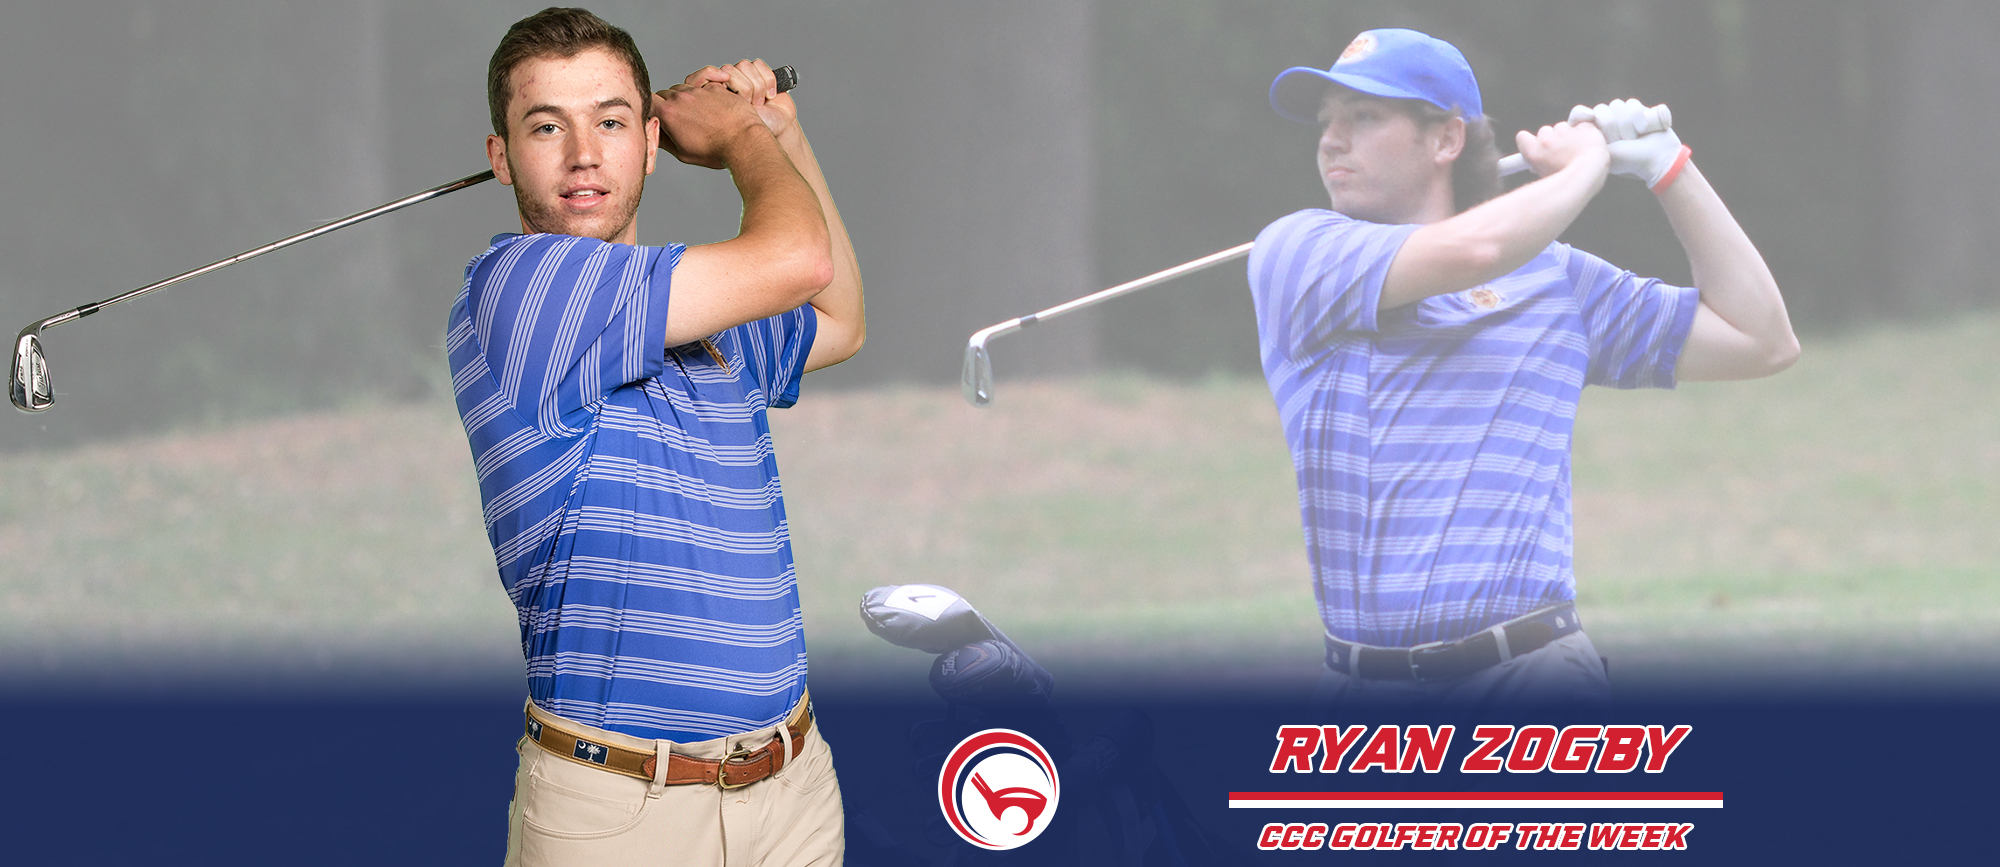 Ryan Zogby Earns CCC Golfer of the Week Recognition